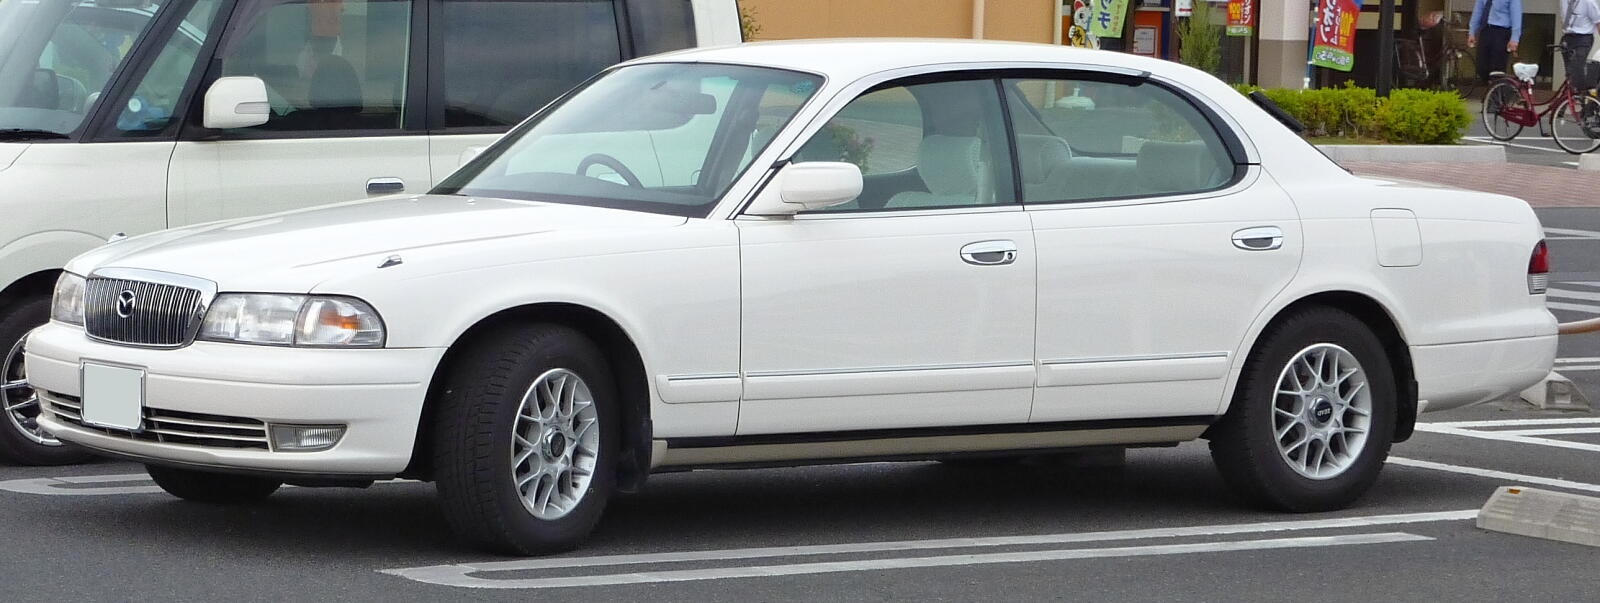 File:2nd Mazda Sentia.jpg